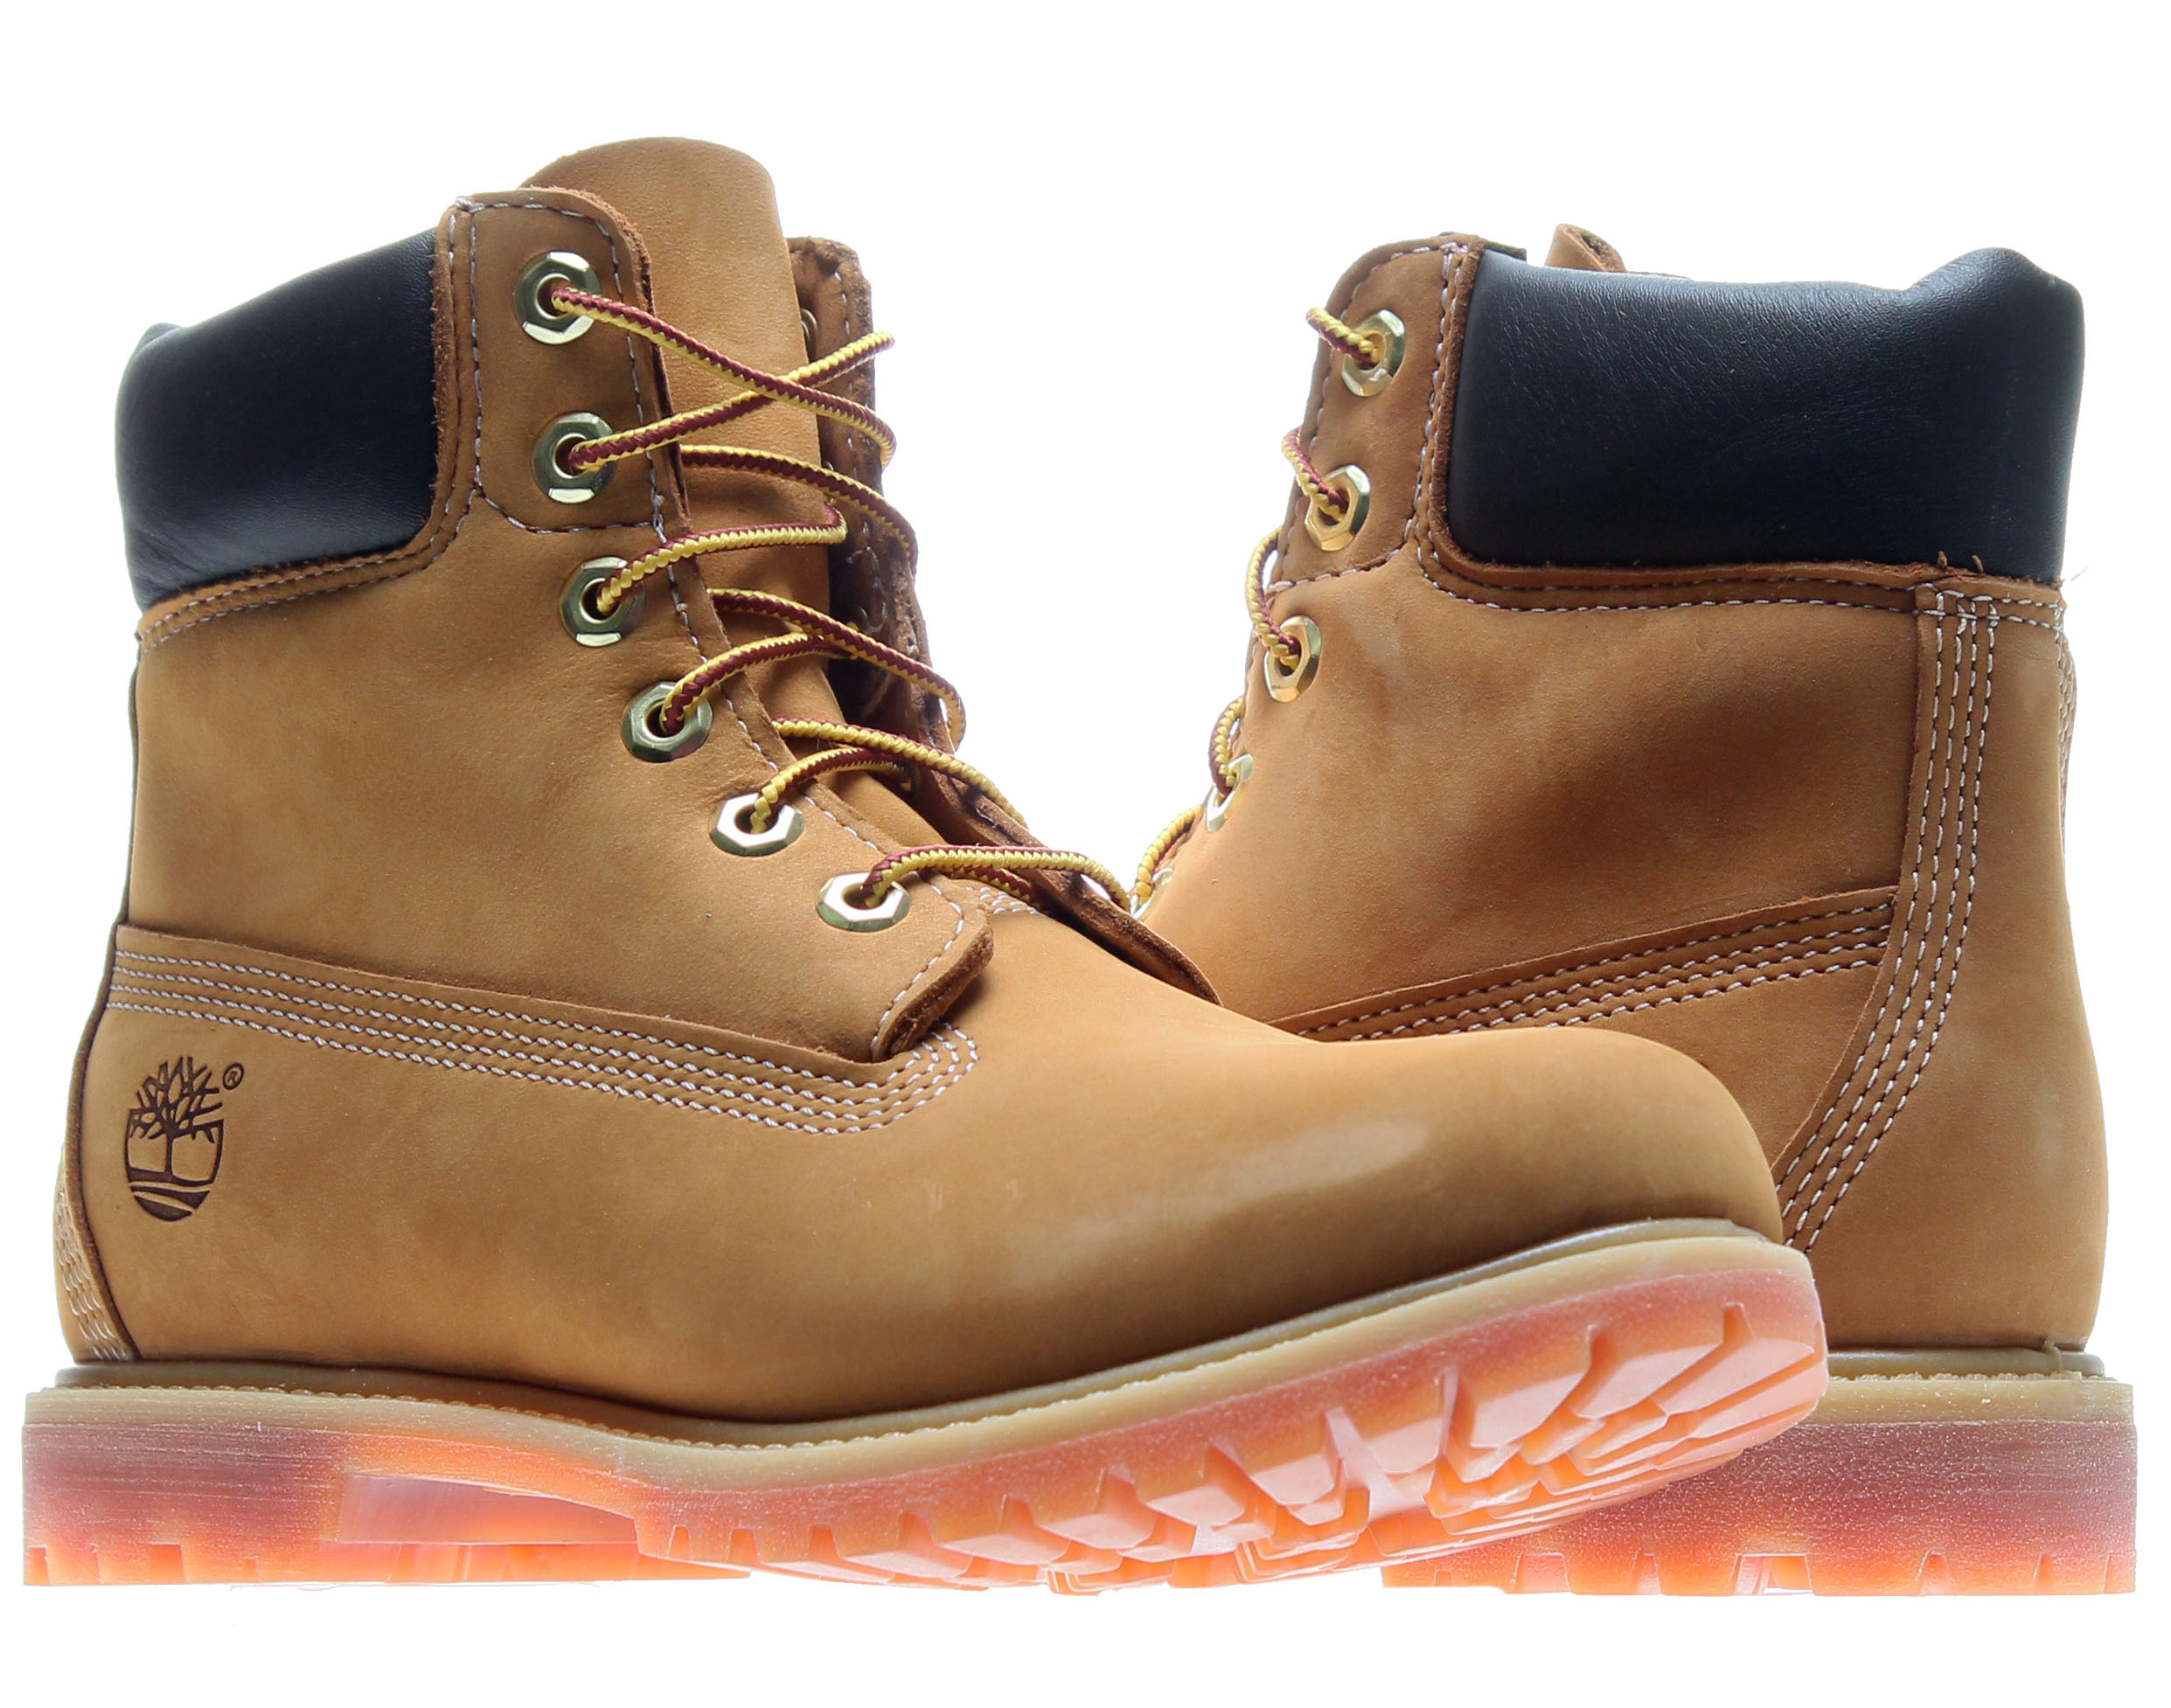 Timberland 6 In Prem Women Round Toe Leather Tan Work Boot by Timberland